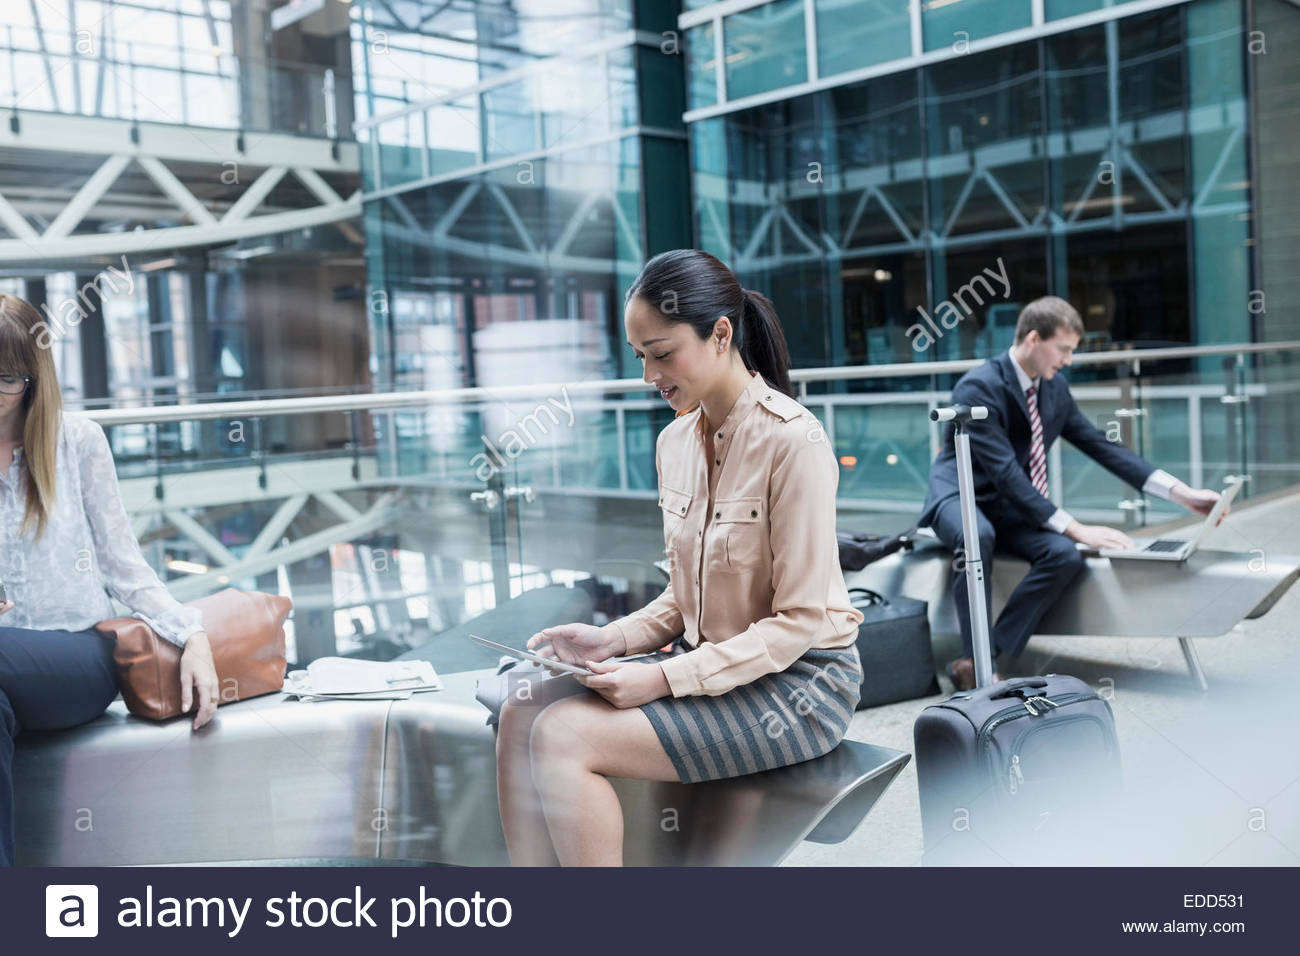 Business people using technology in airport atrium - Stock Image